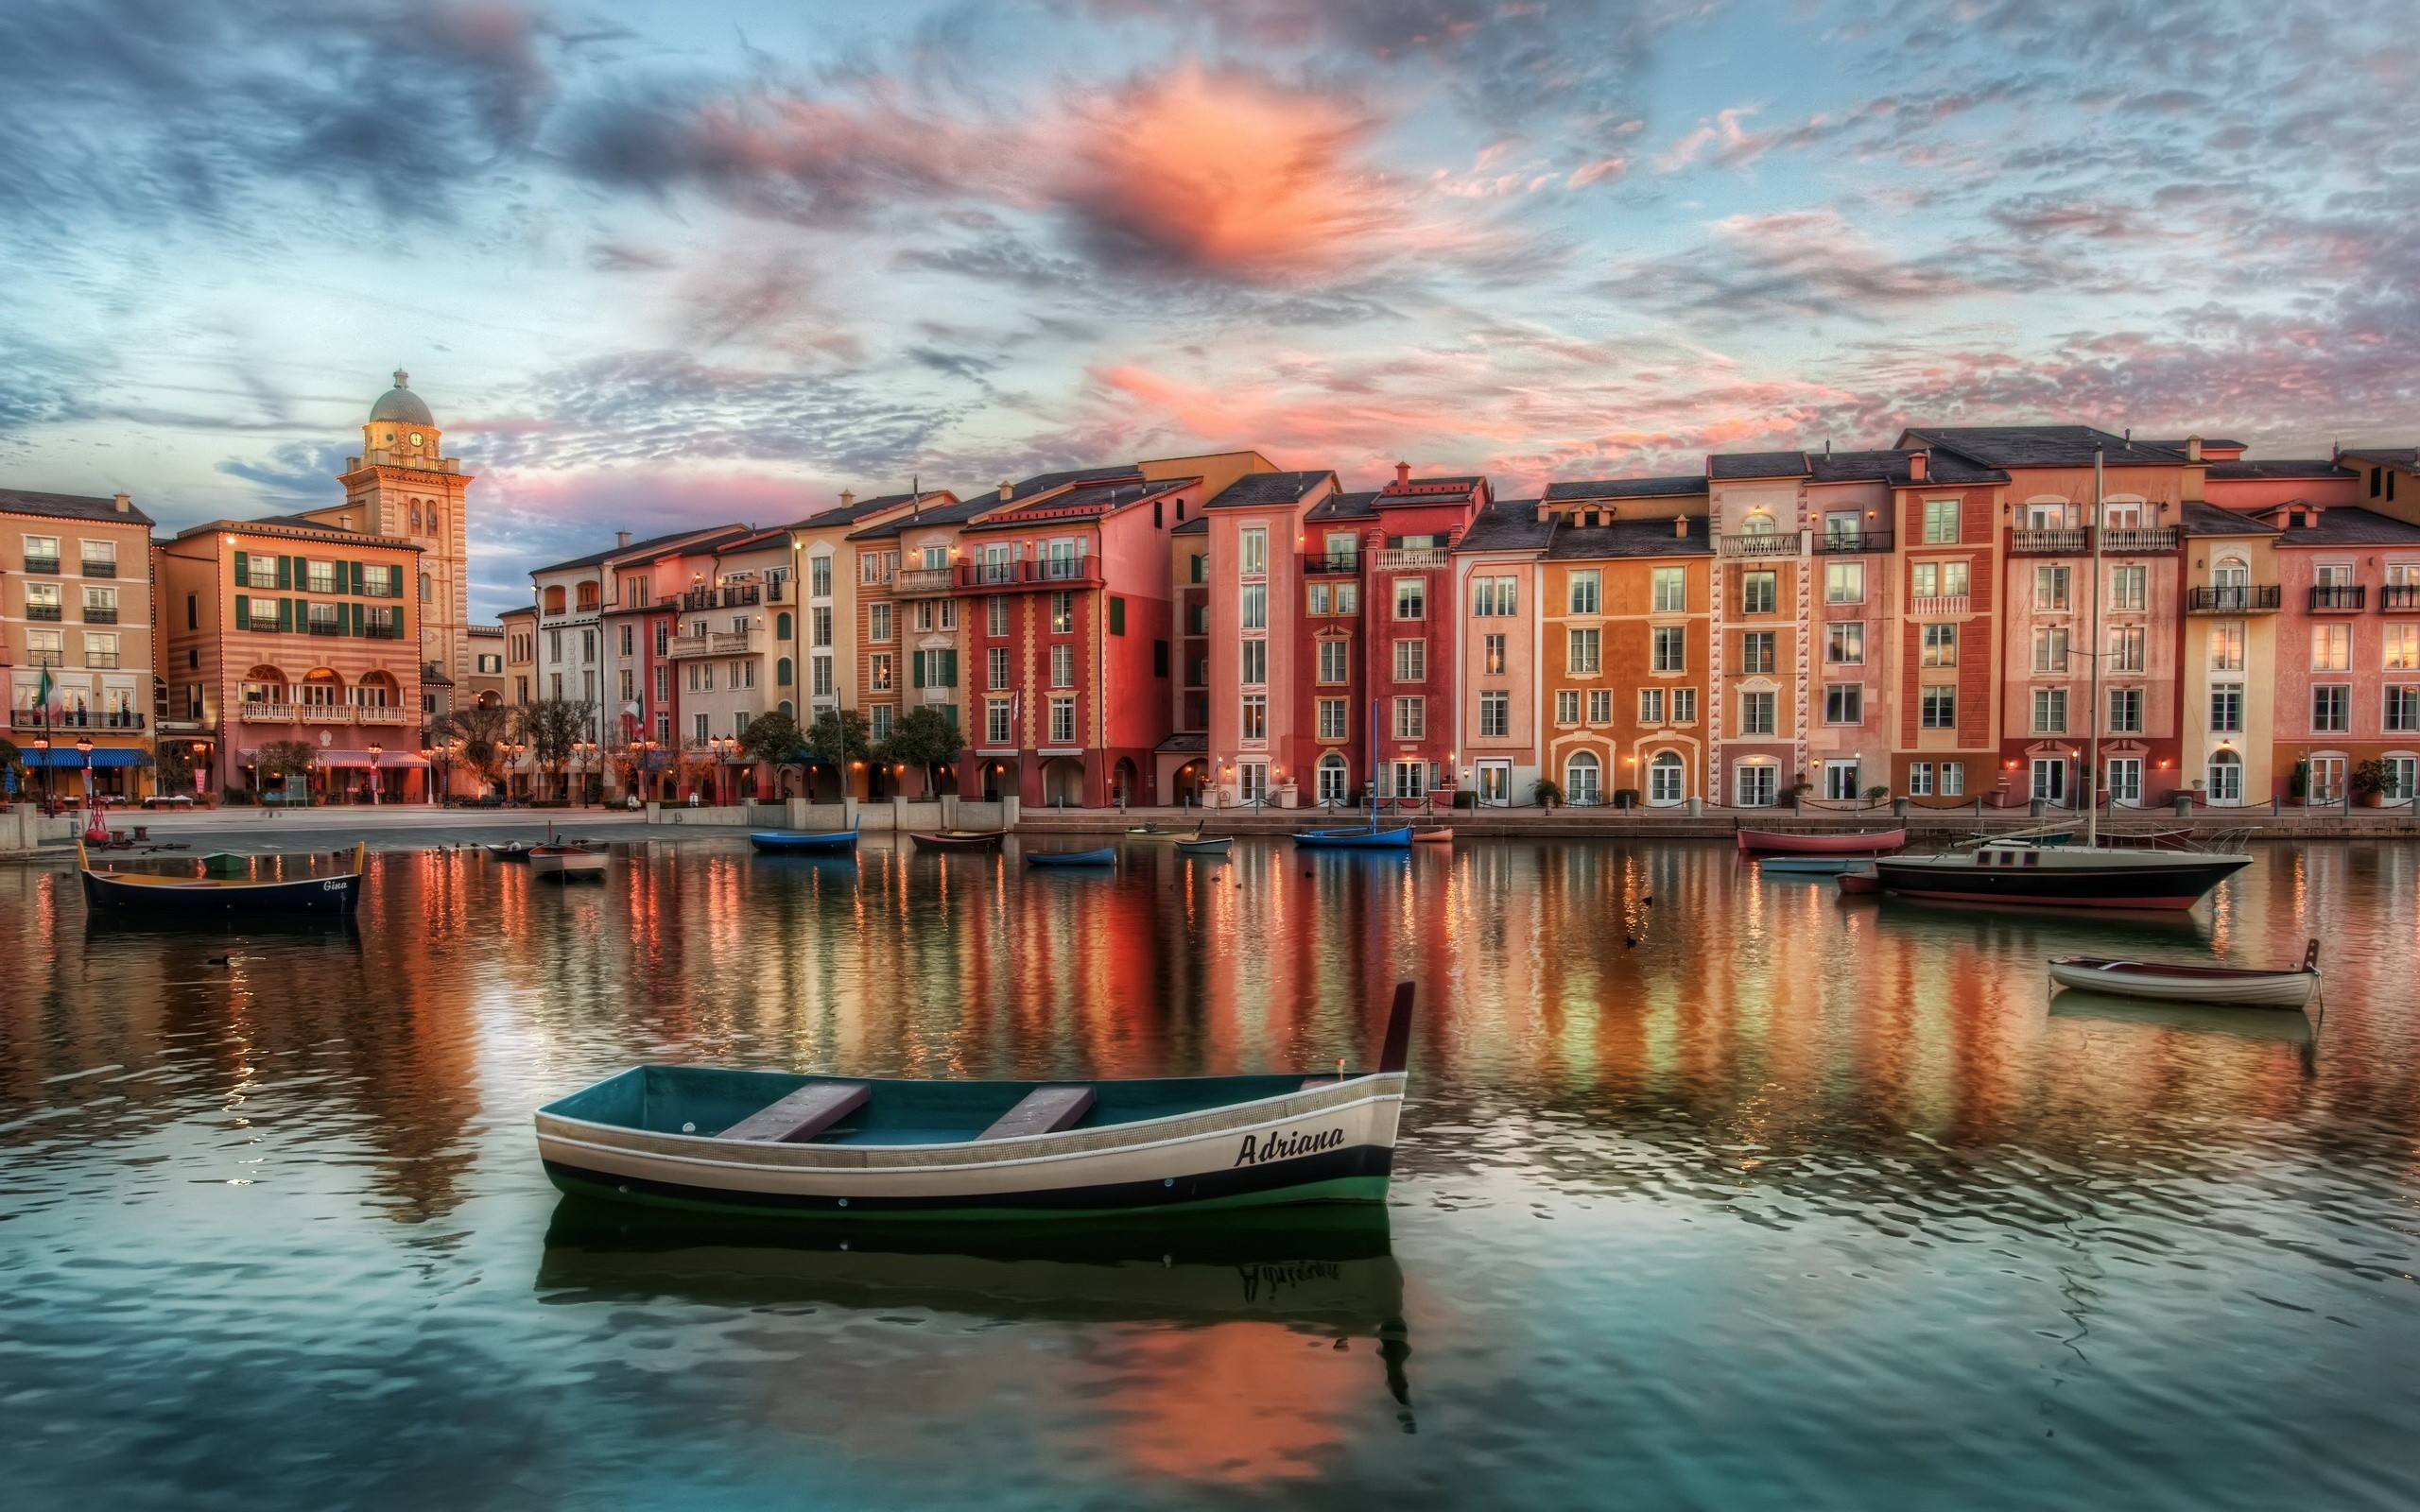 Hd wallpaper europe - Europe Italy Venice Boats Rivers